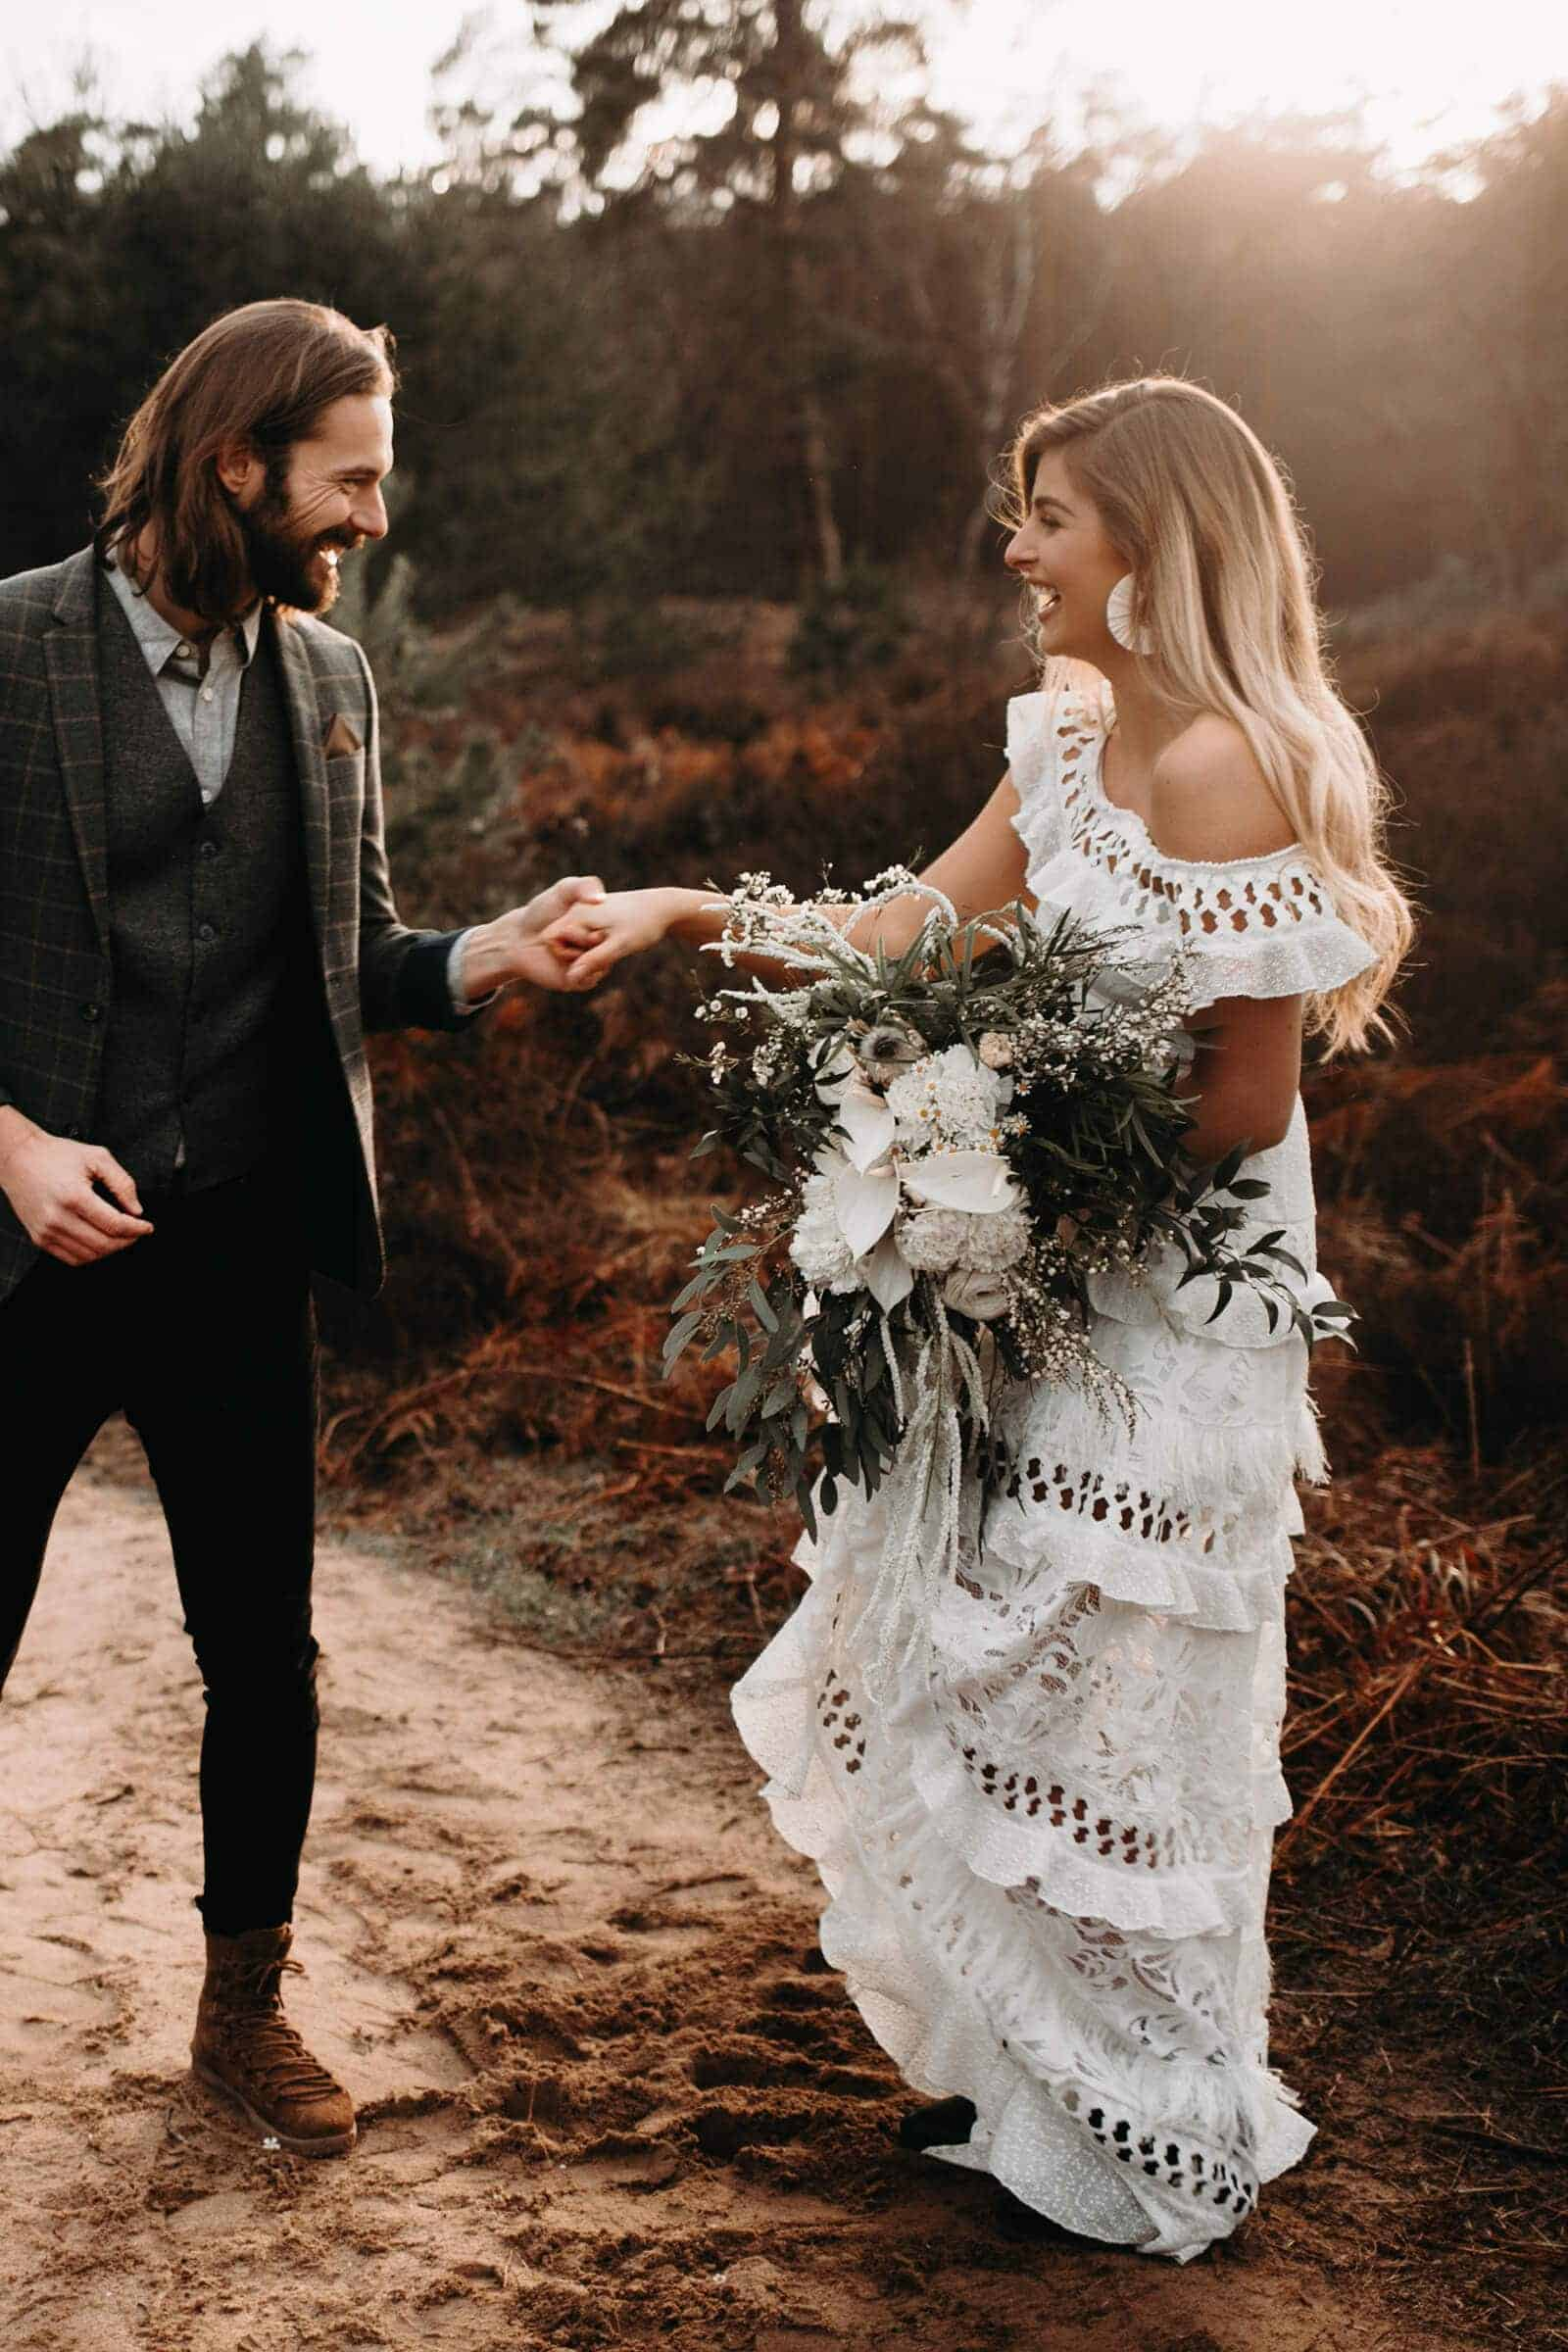 Elopement Wedding Dress Casual Simple Ivory Off The Shoulder Dress Intimate Wedding Dress Romantic Grace Loves Lace Coco (1)